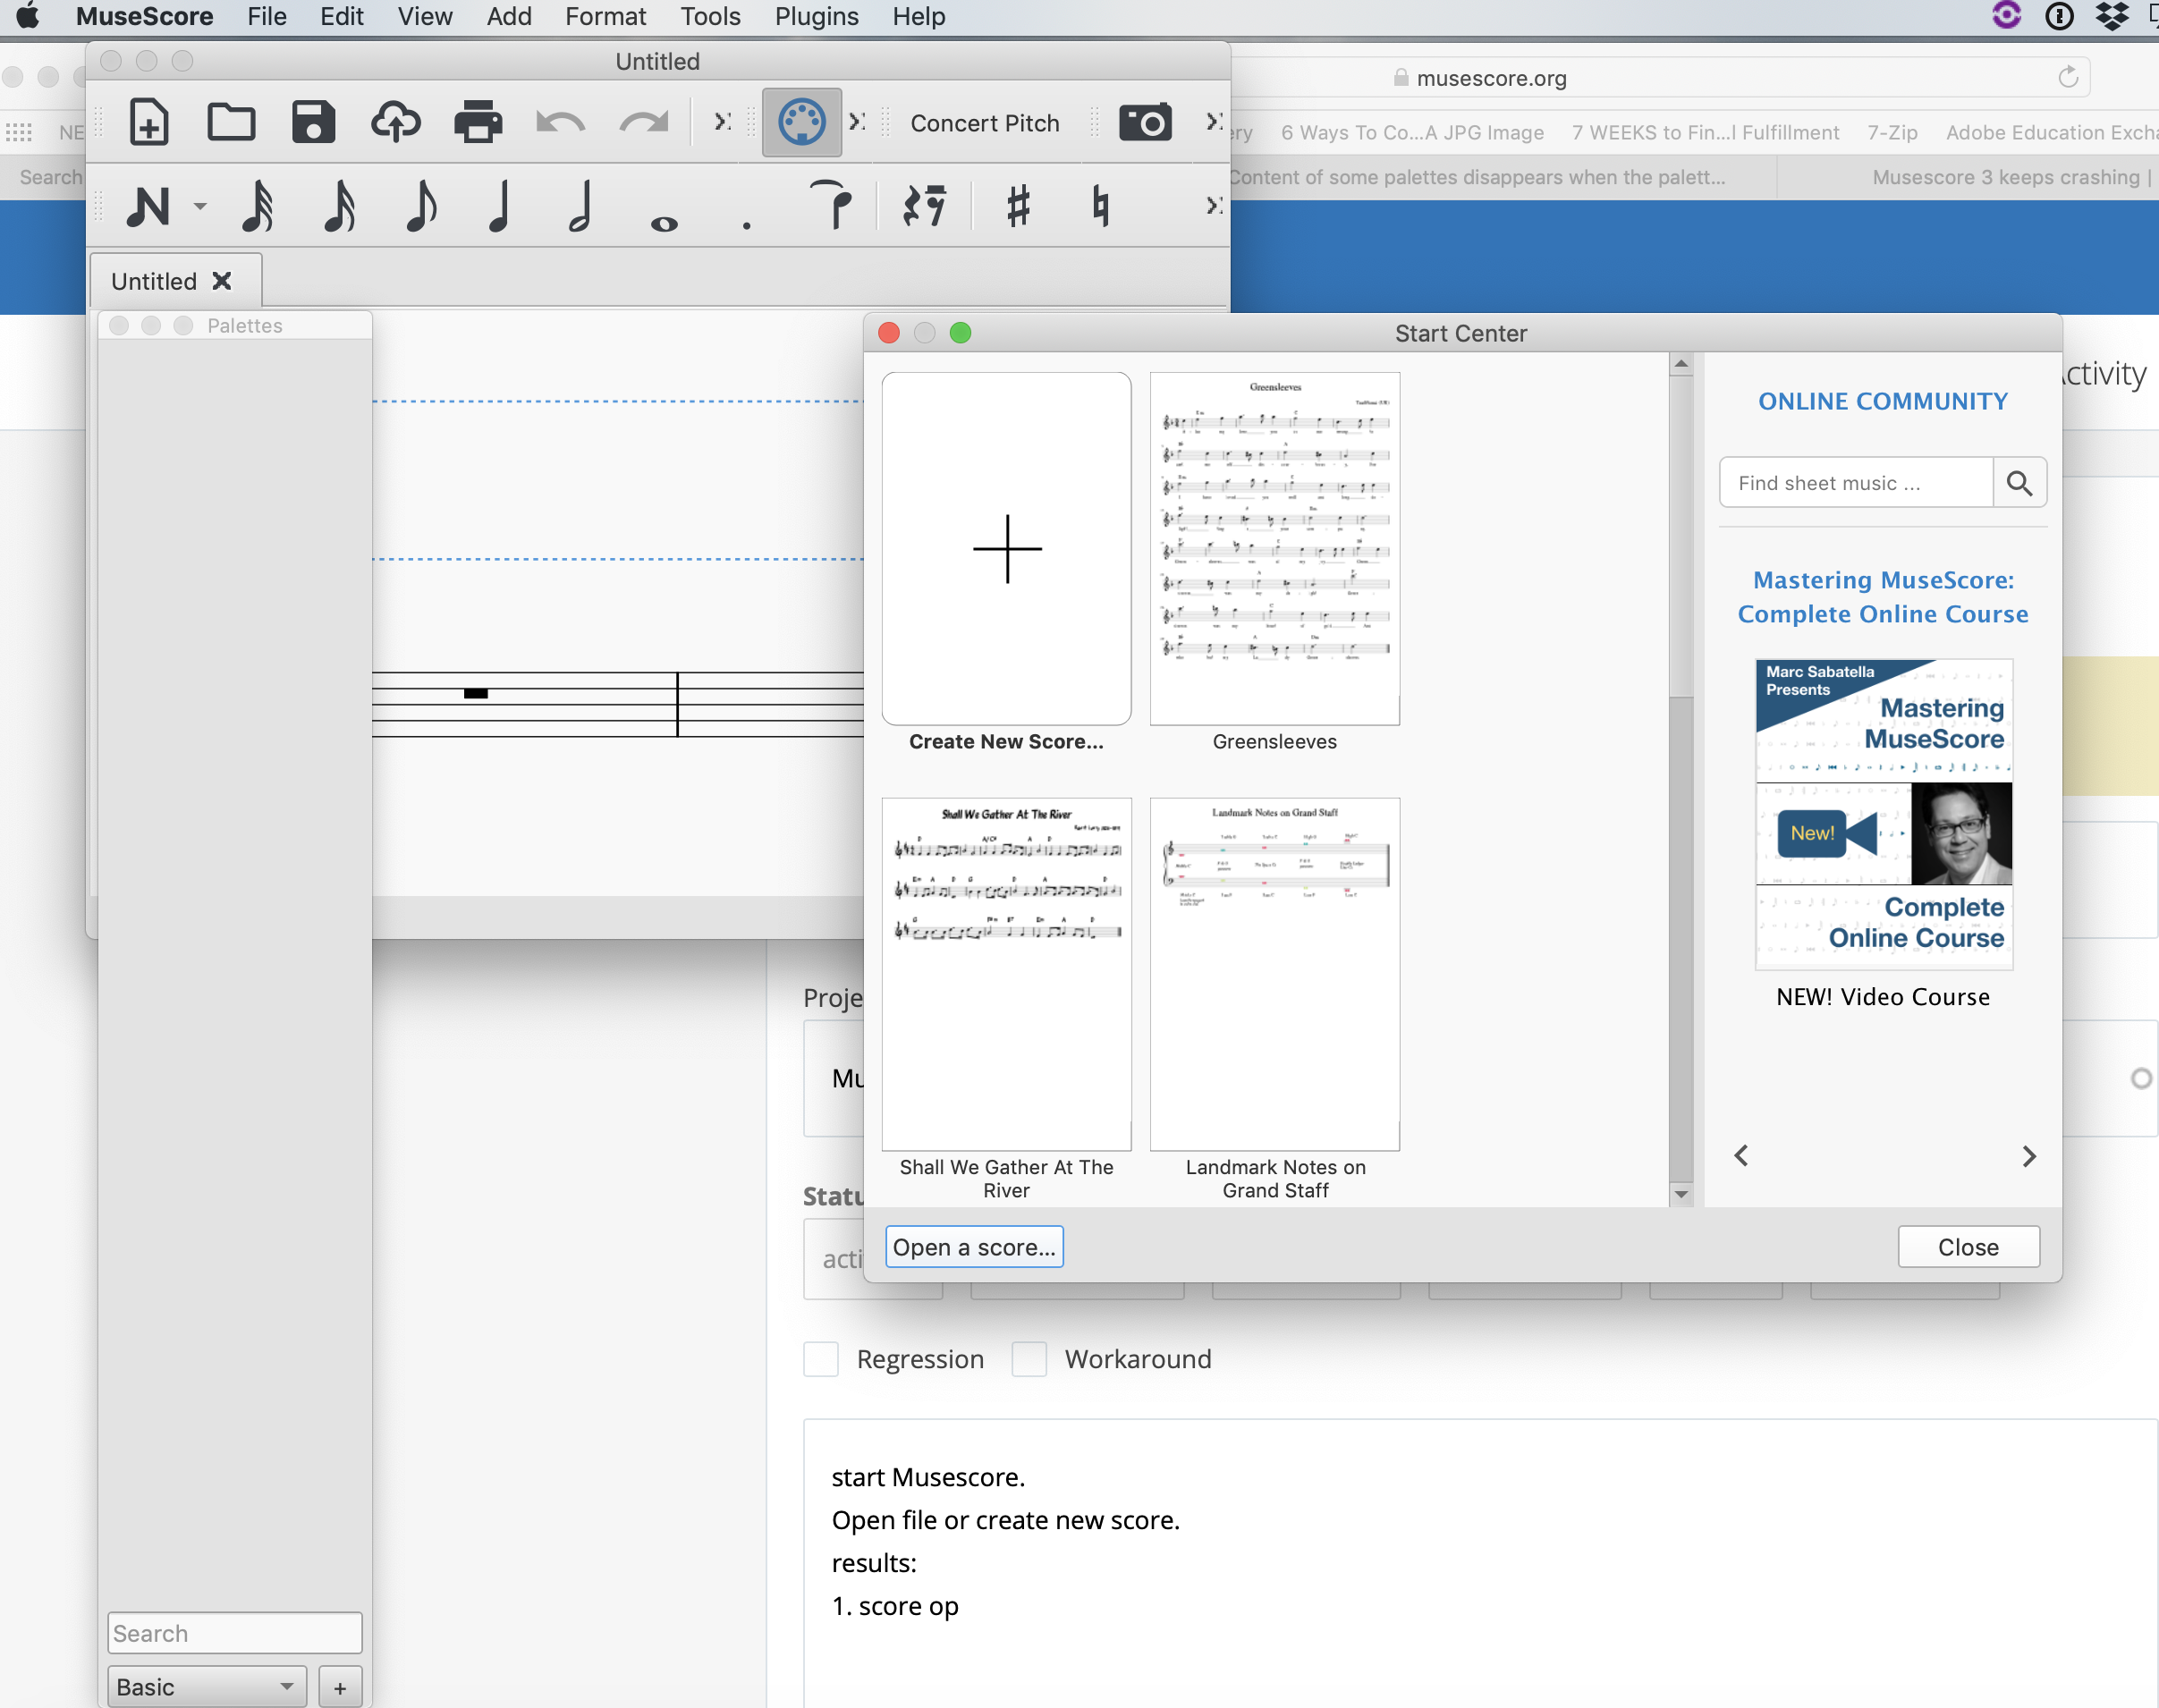 Basic and Advanced Palettes are empty   MuseScore